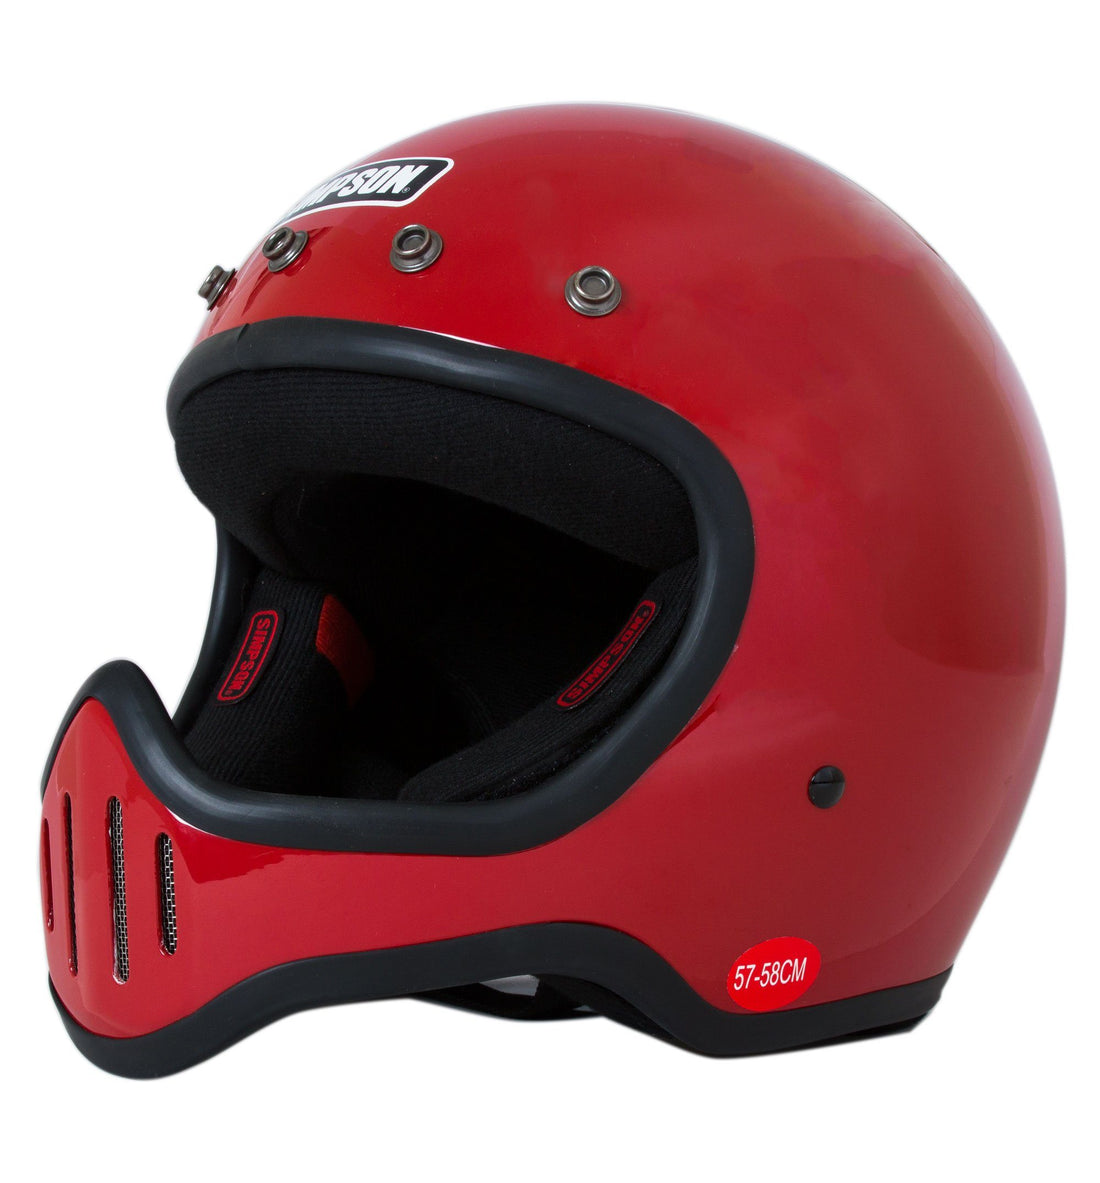 Simpson Helmets M50 - Red, M - Display Model - Riding - Iron and Resin